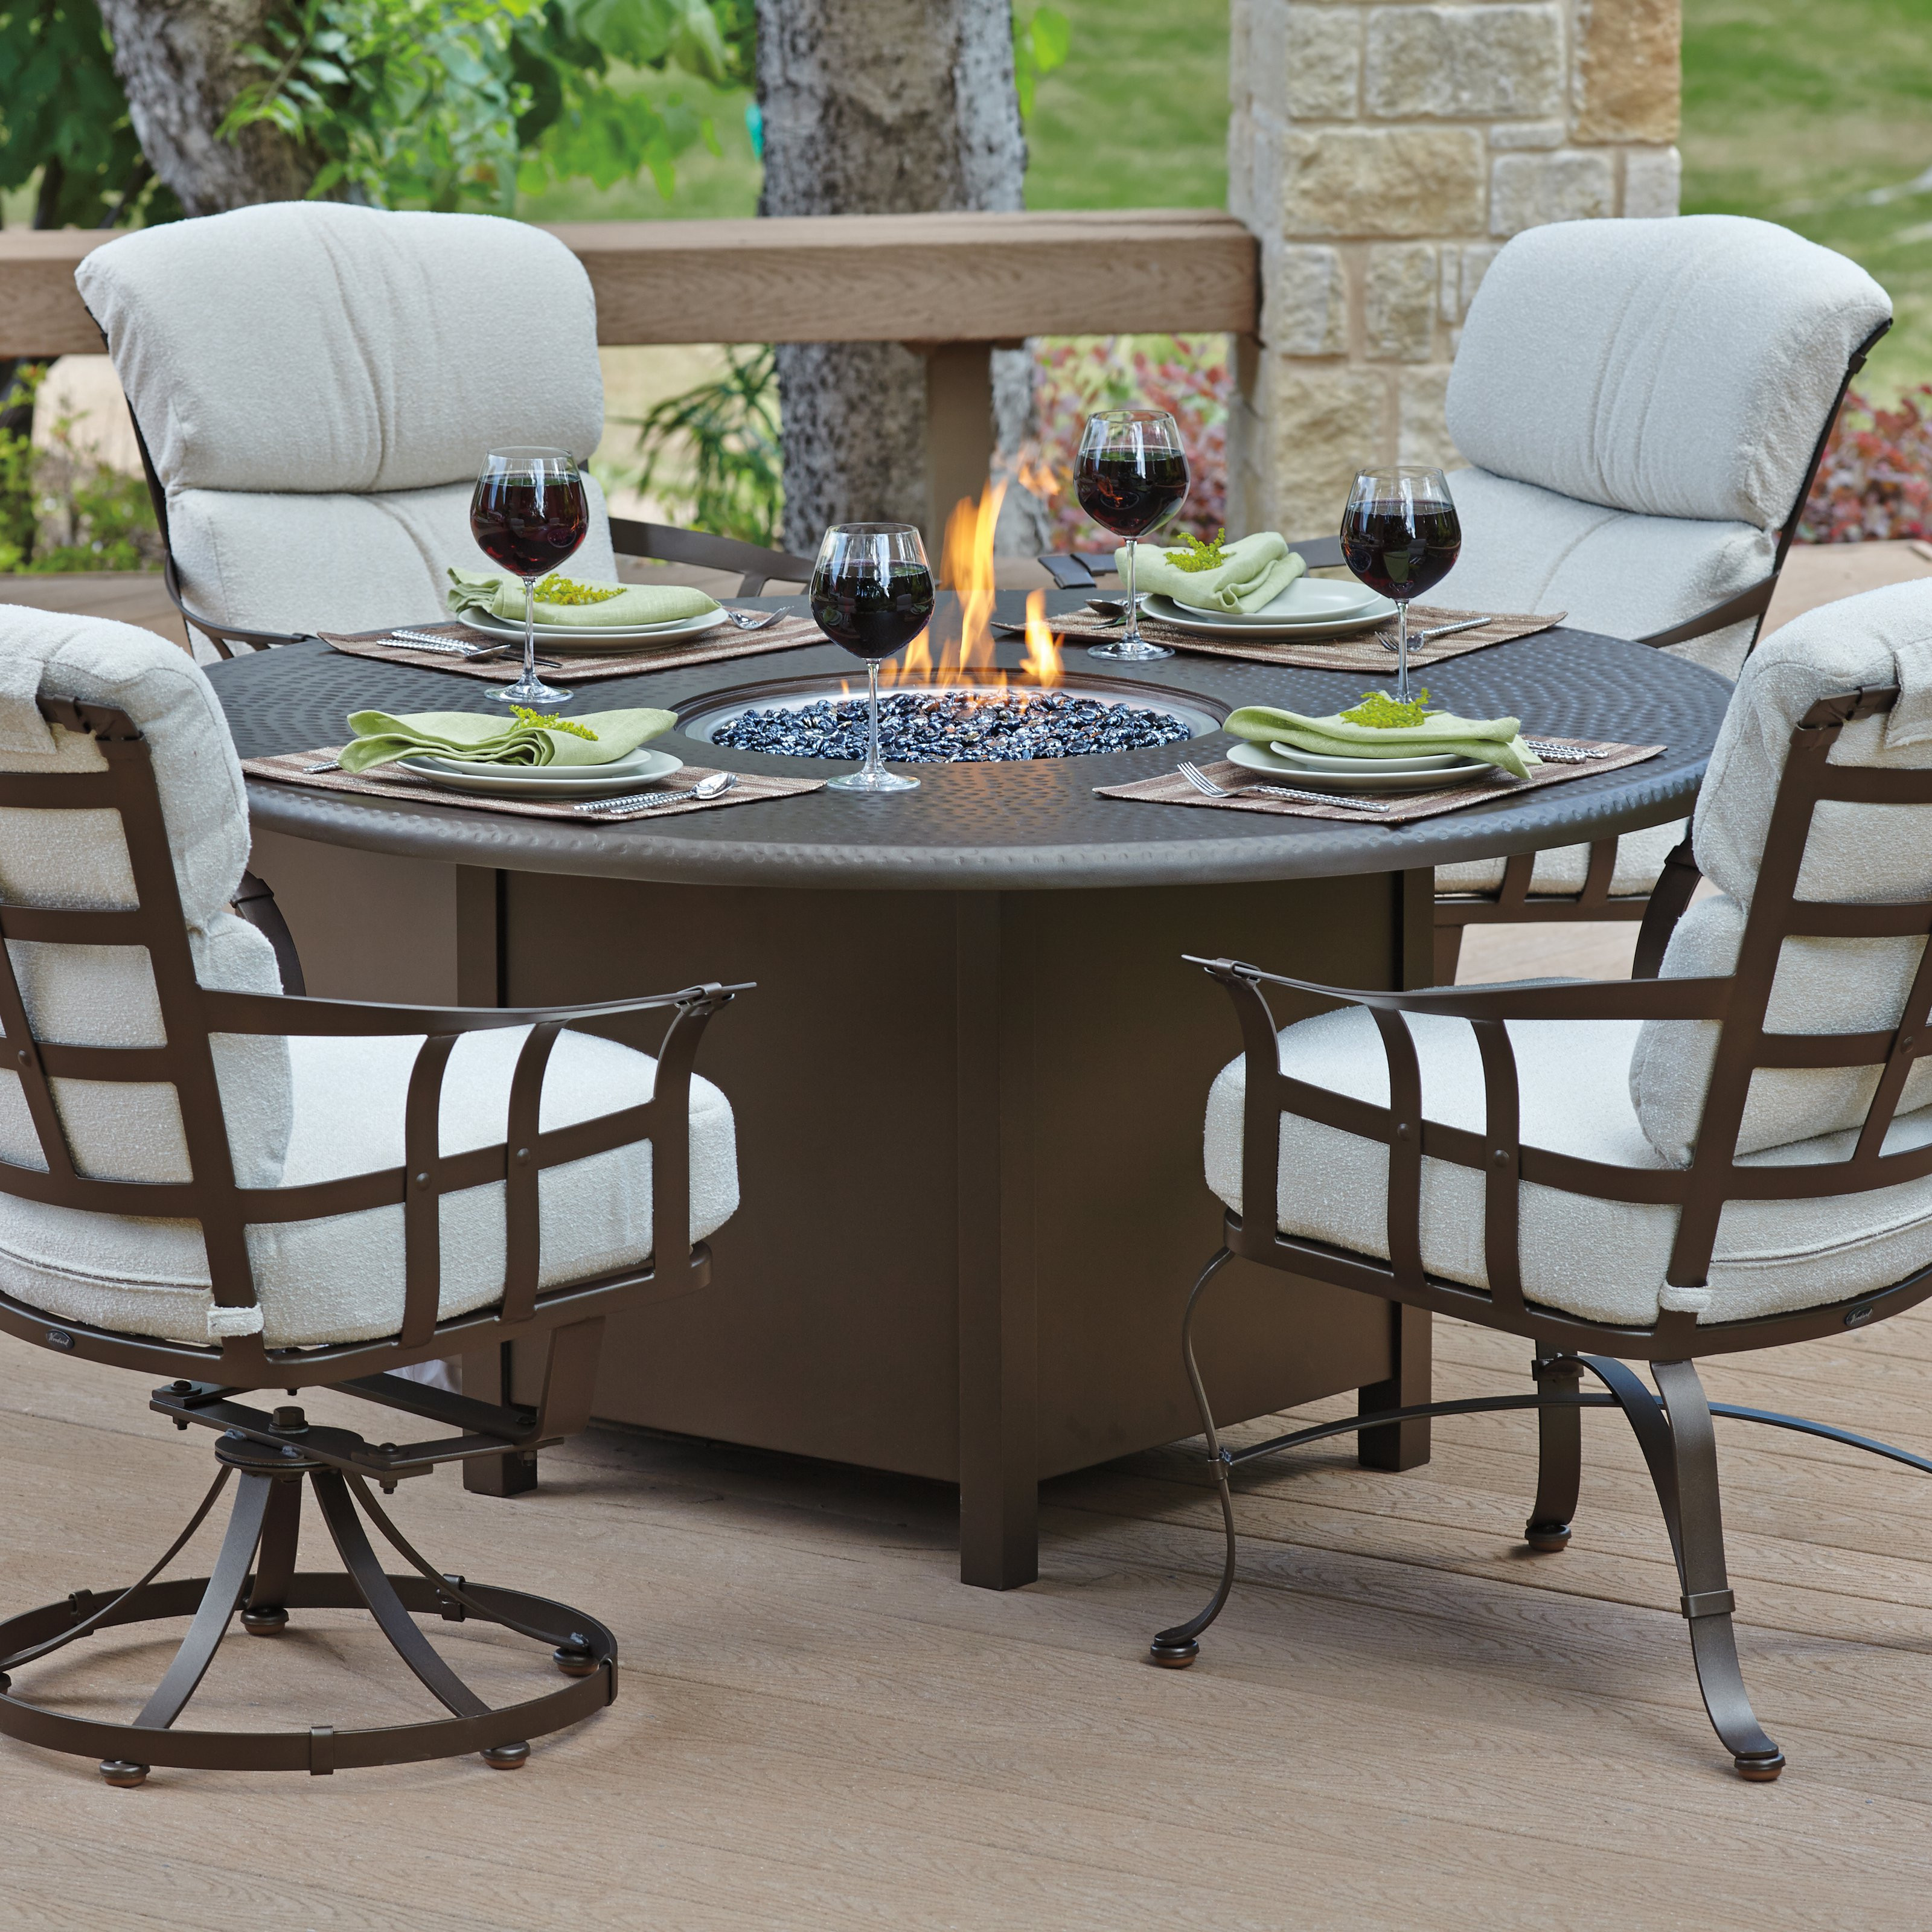 Best ideas about Fire Pit Dining Table . Save or Pin Woodard Hammered 48 in Round Fire Pit Table Patio Now.